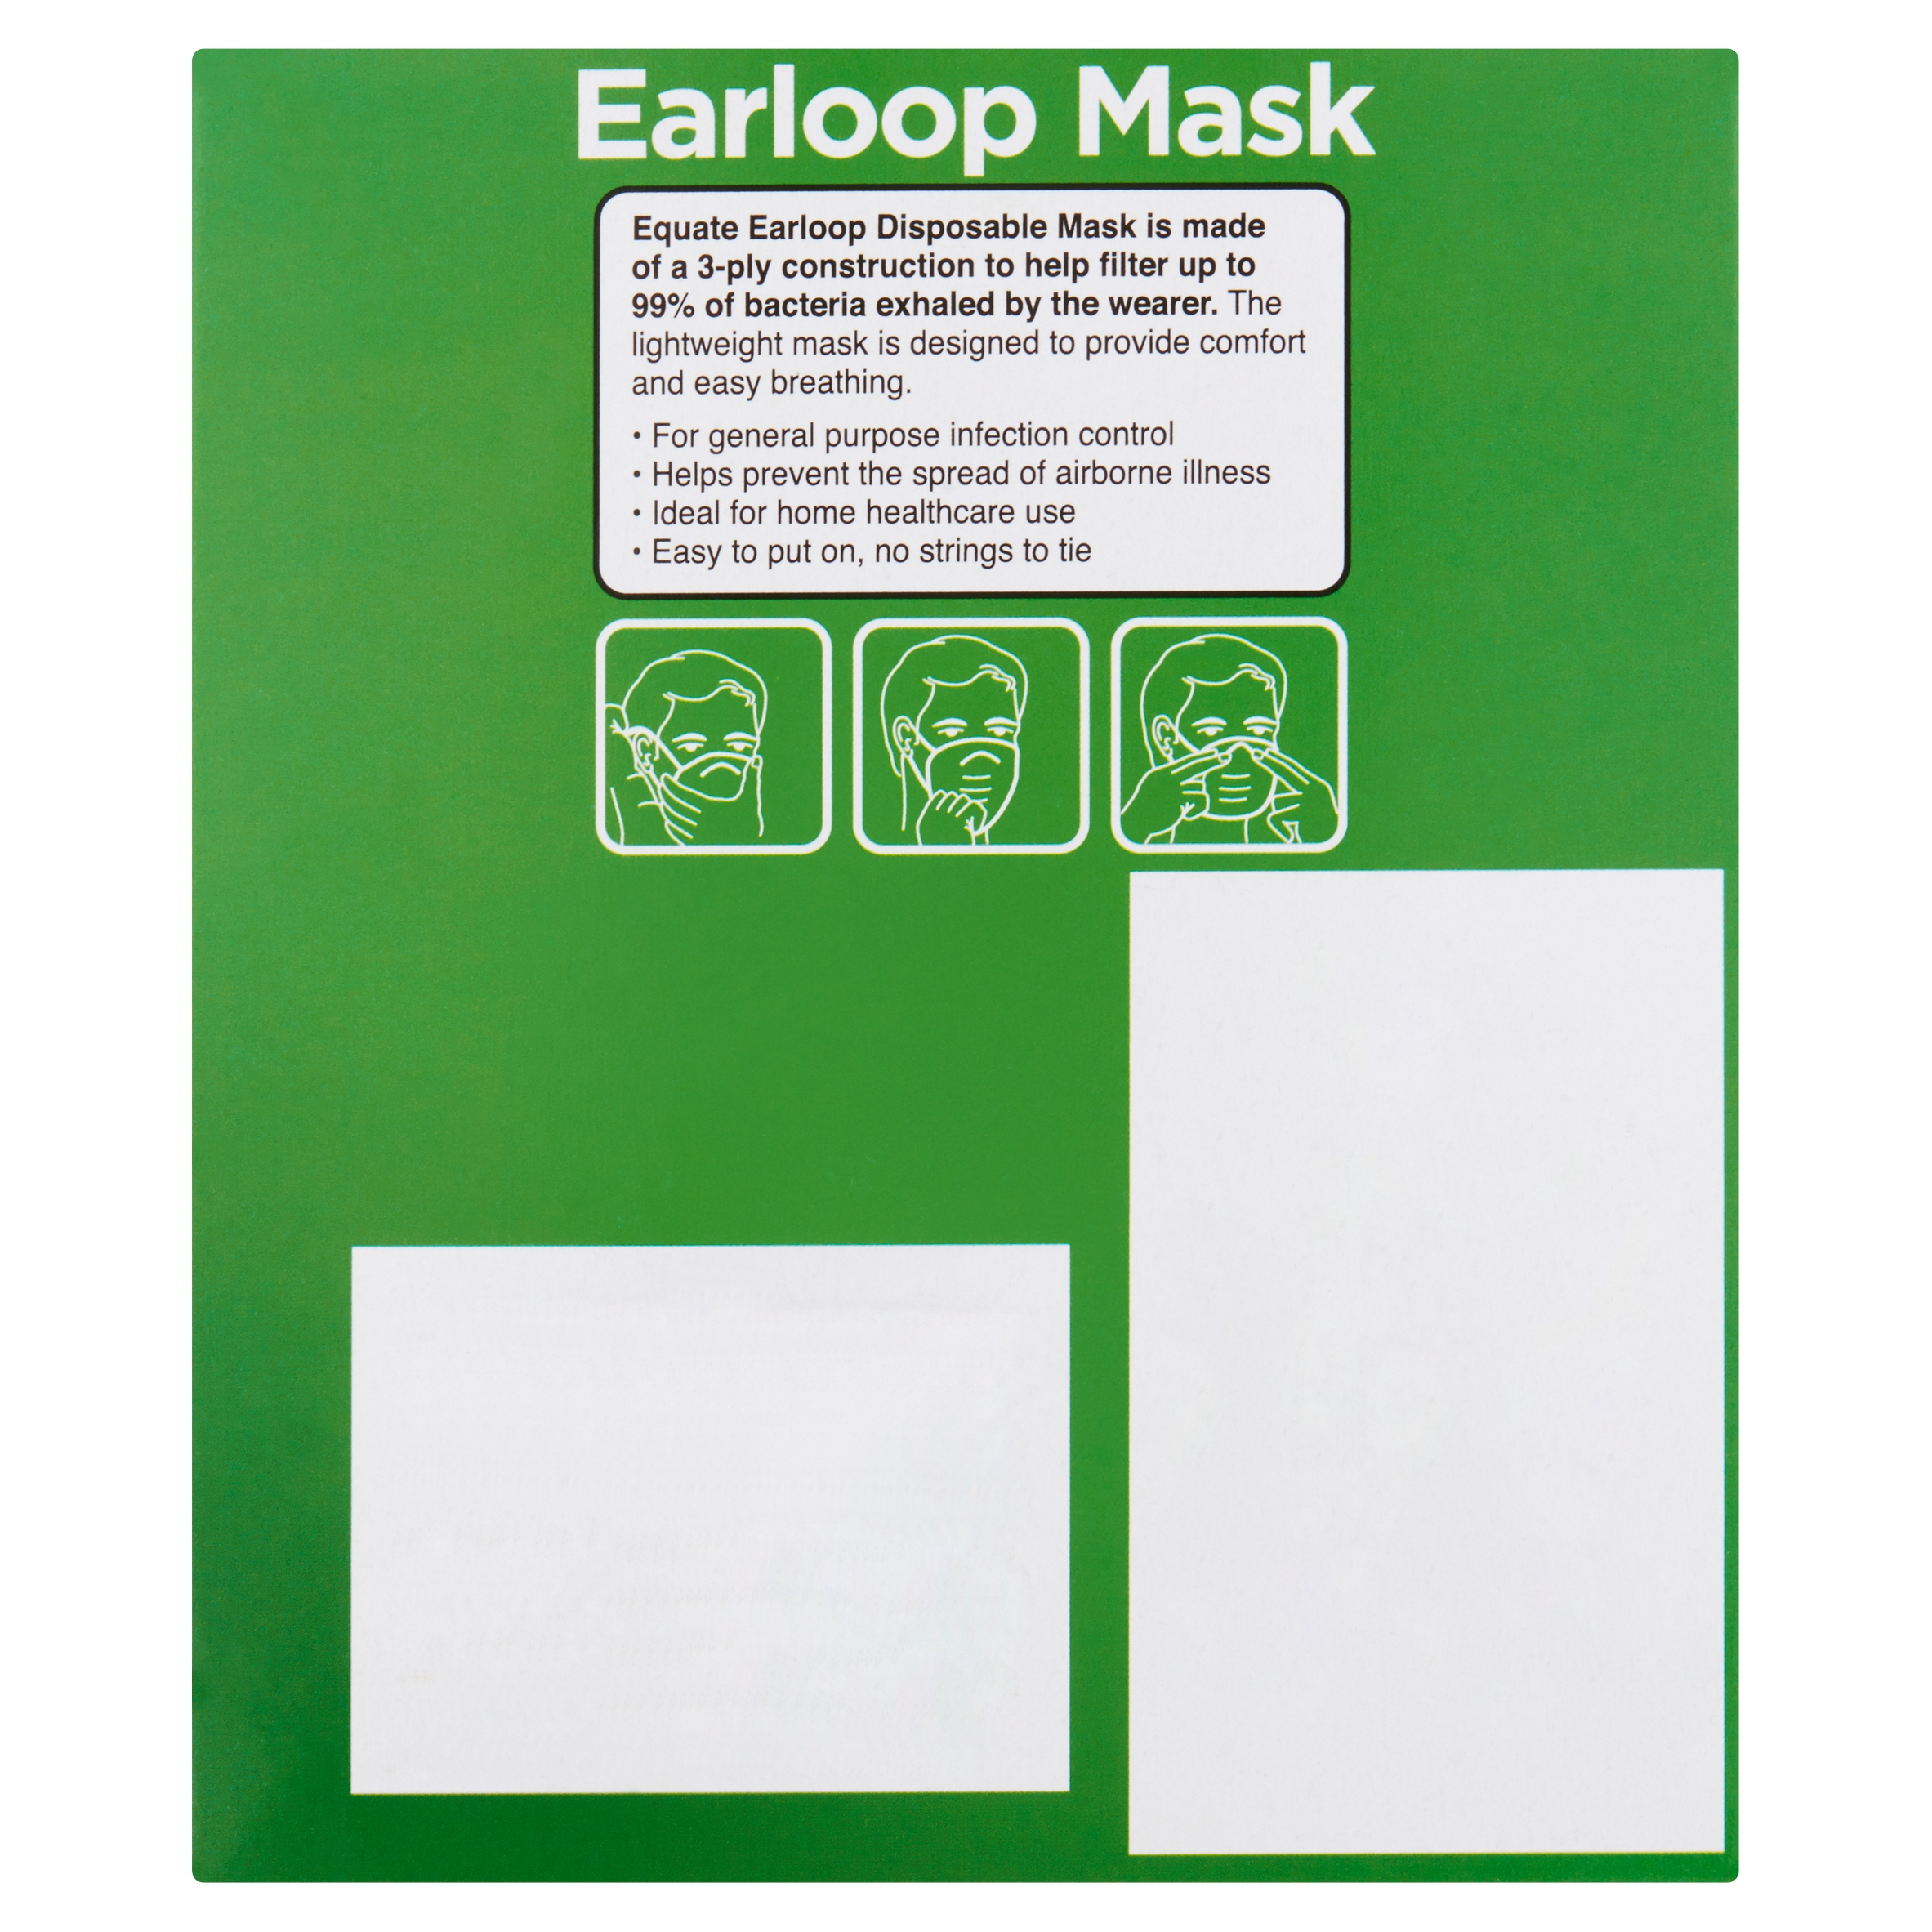 earloop mask disposable